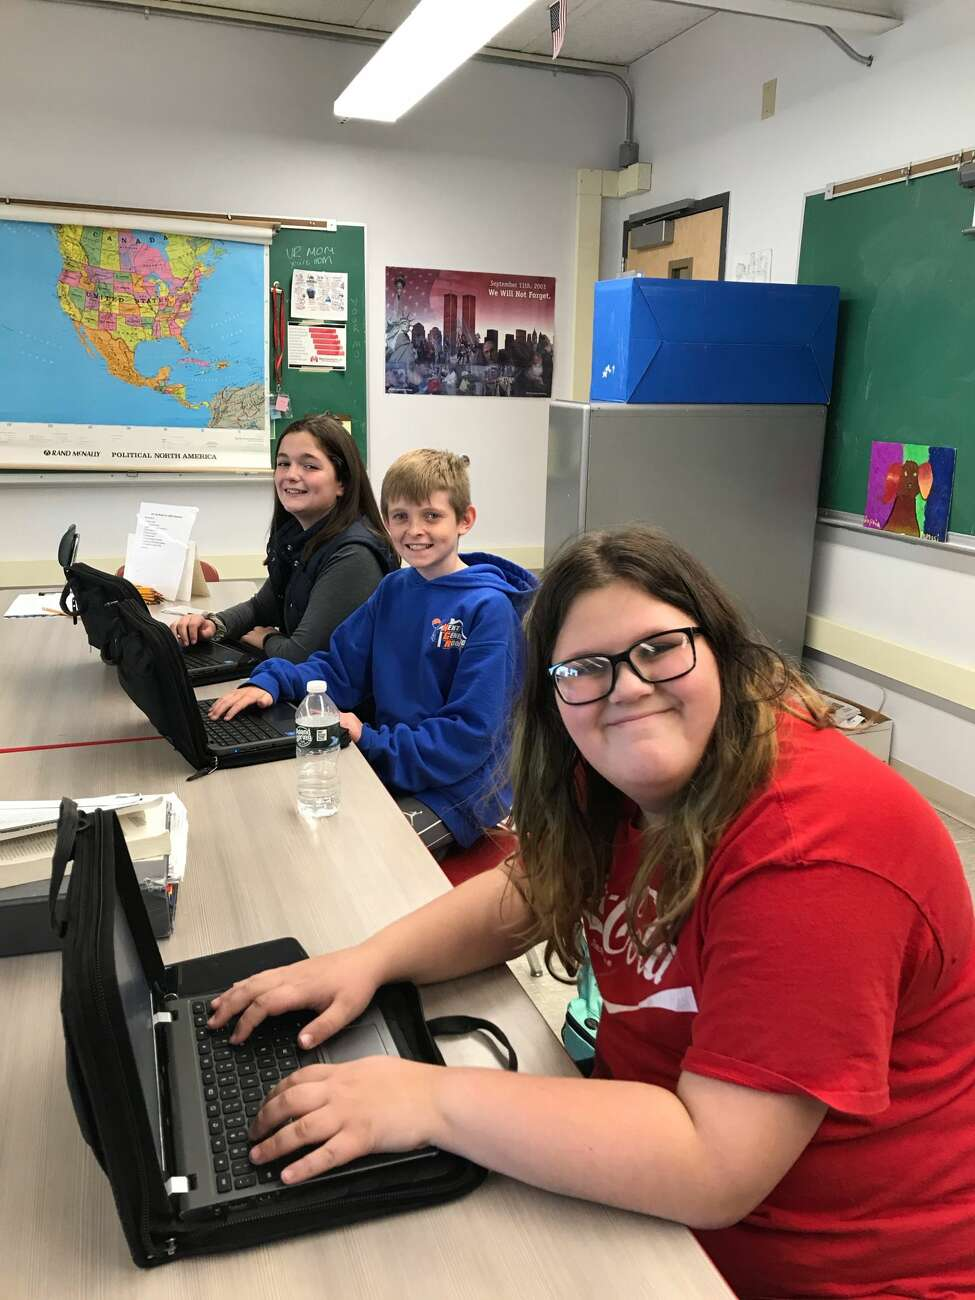 The Hope Fund helps provide after-school clubs at the Mechanicville Middle School, including students in the journalism club shown here.